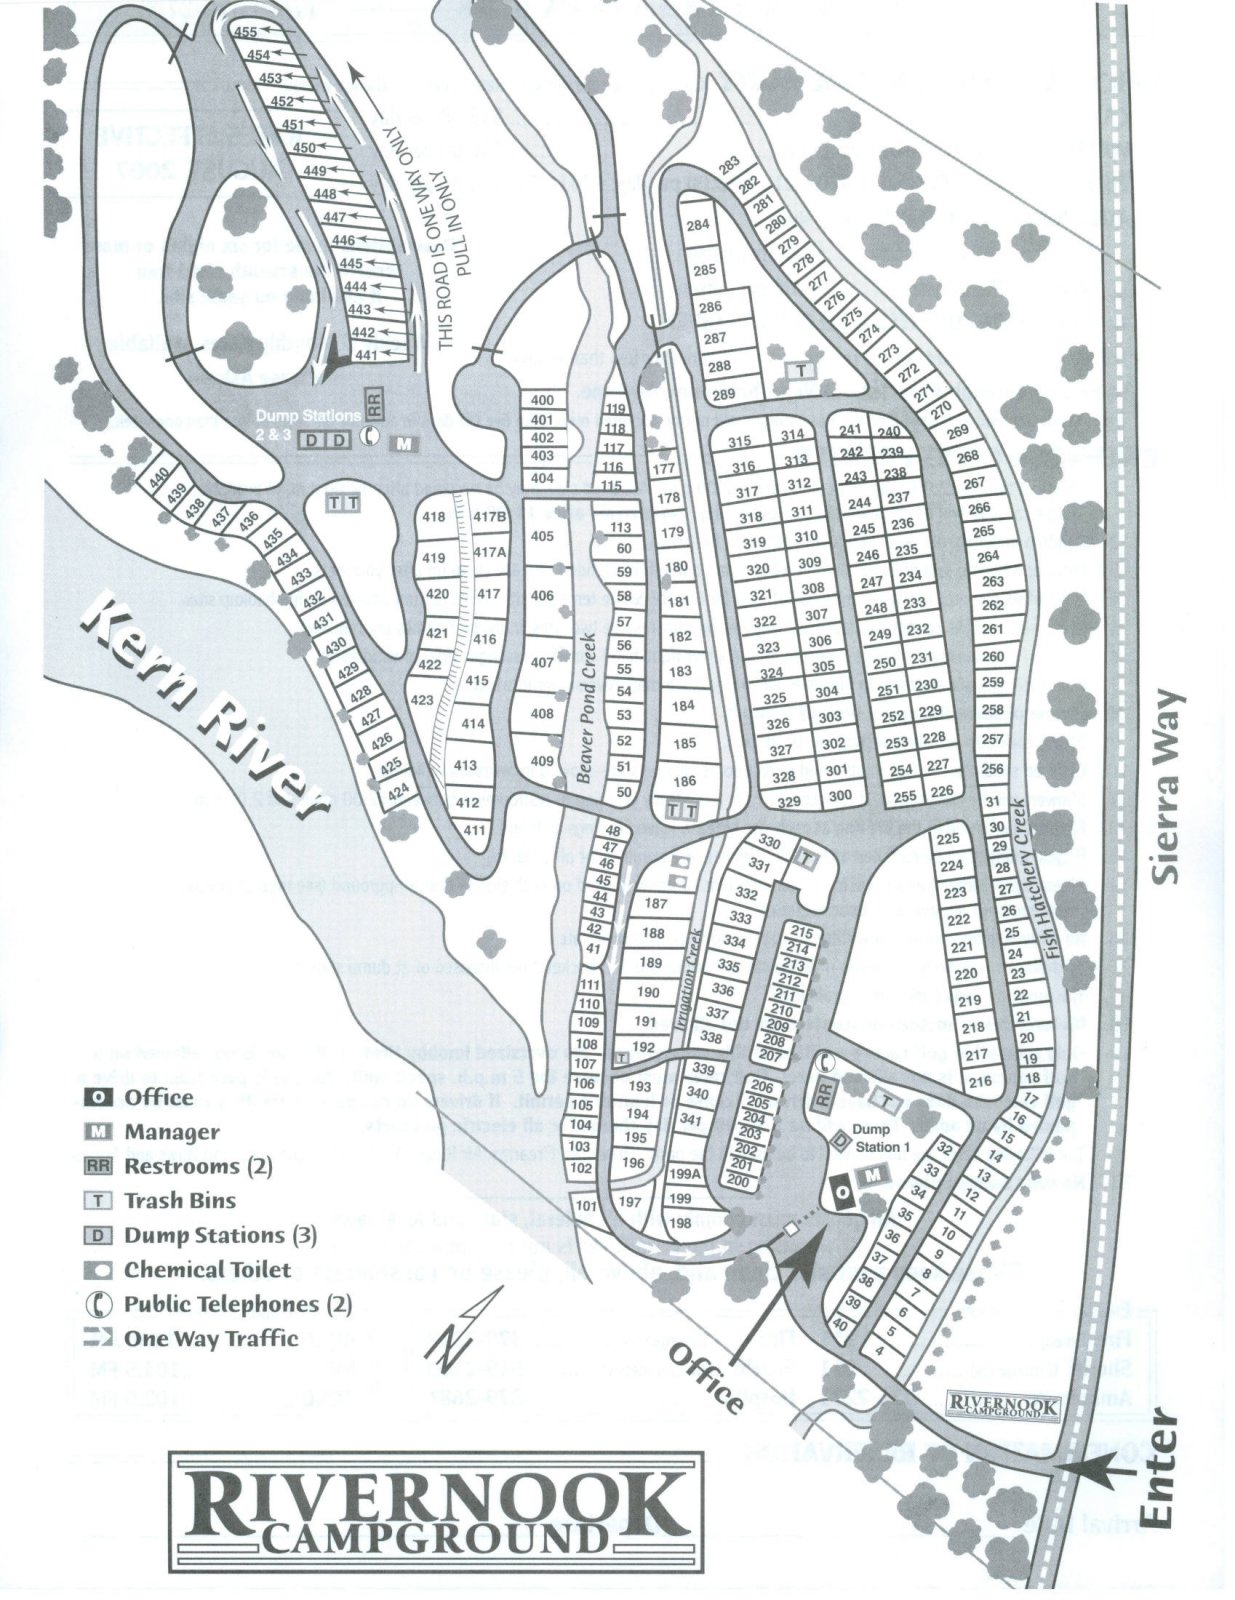 Click image for larger version  Name:Rivernook Map.jpg Views:436 Size:347.5 KB ID:239278